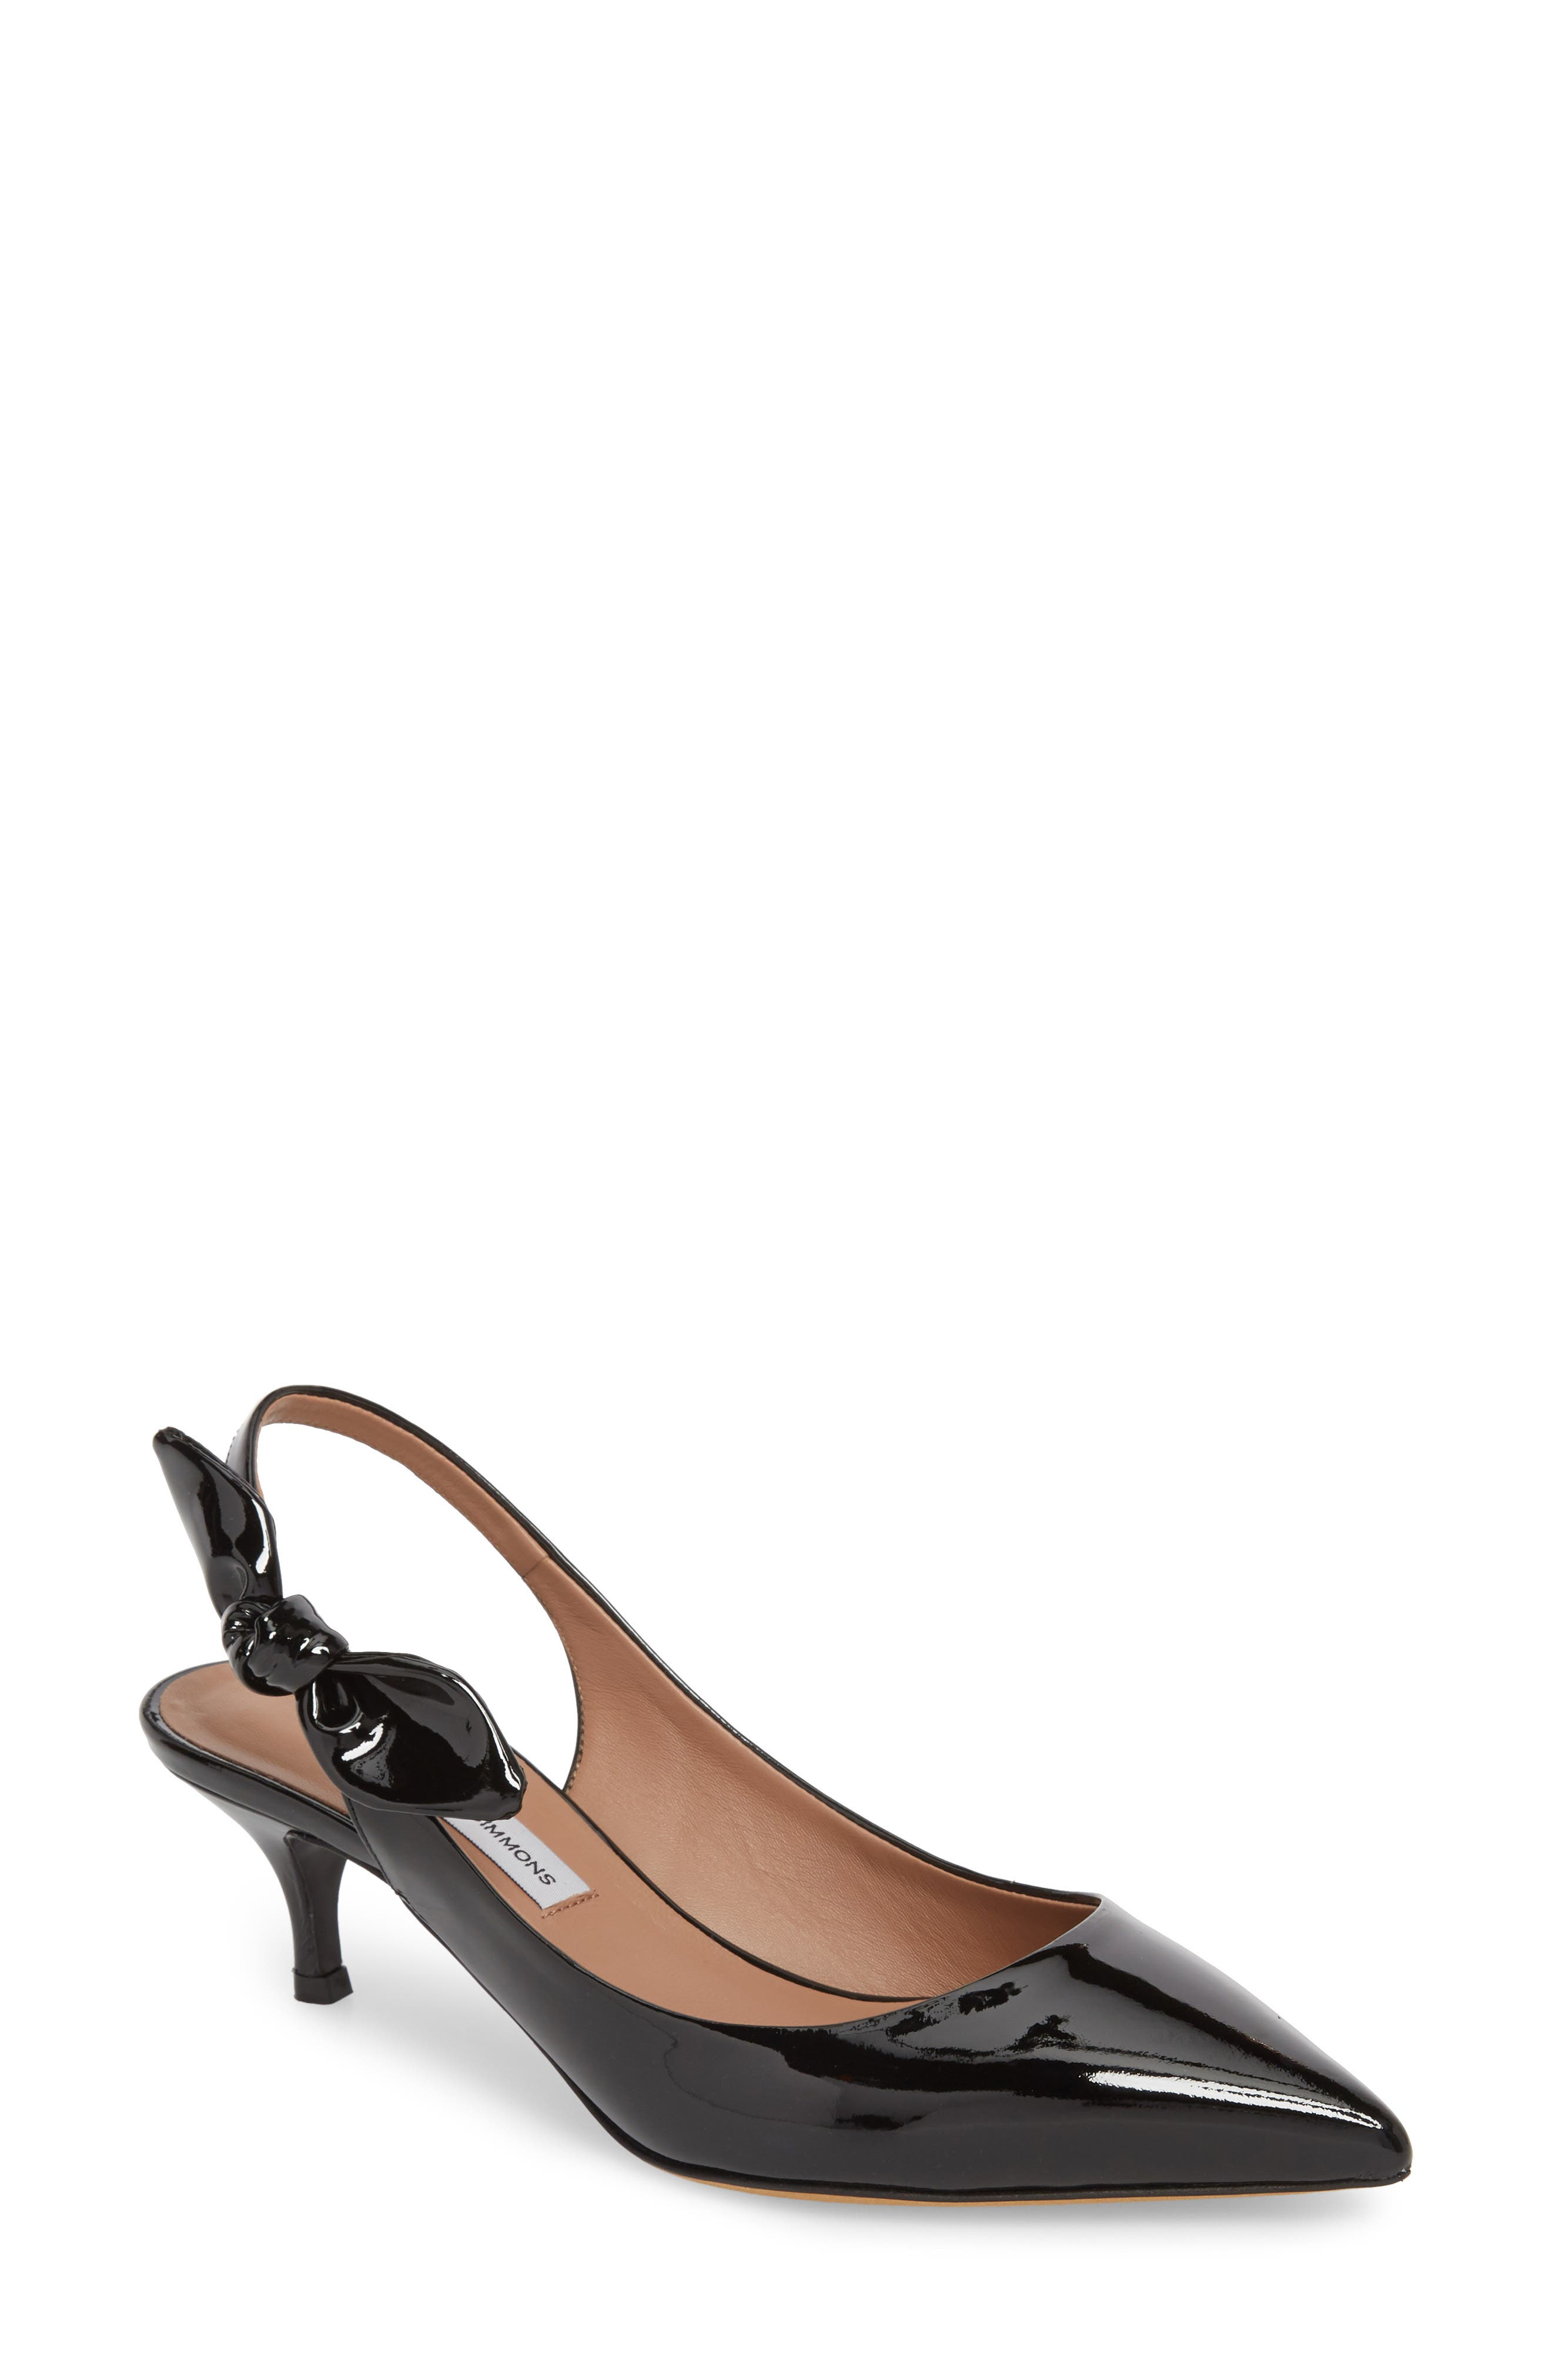 Rise Bow Slingback Pump,                             Main thumbnail 1, color,                             BLACK PATENT